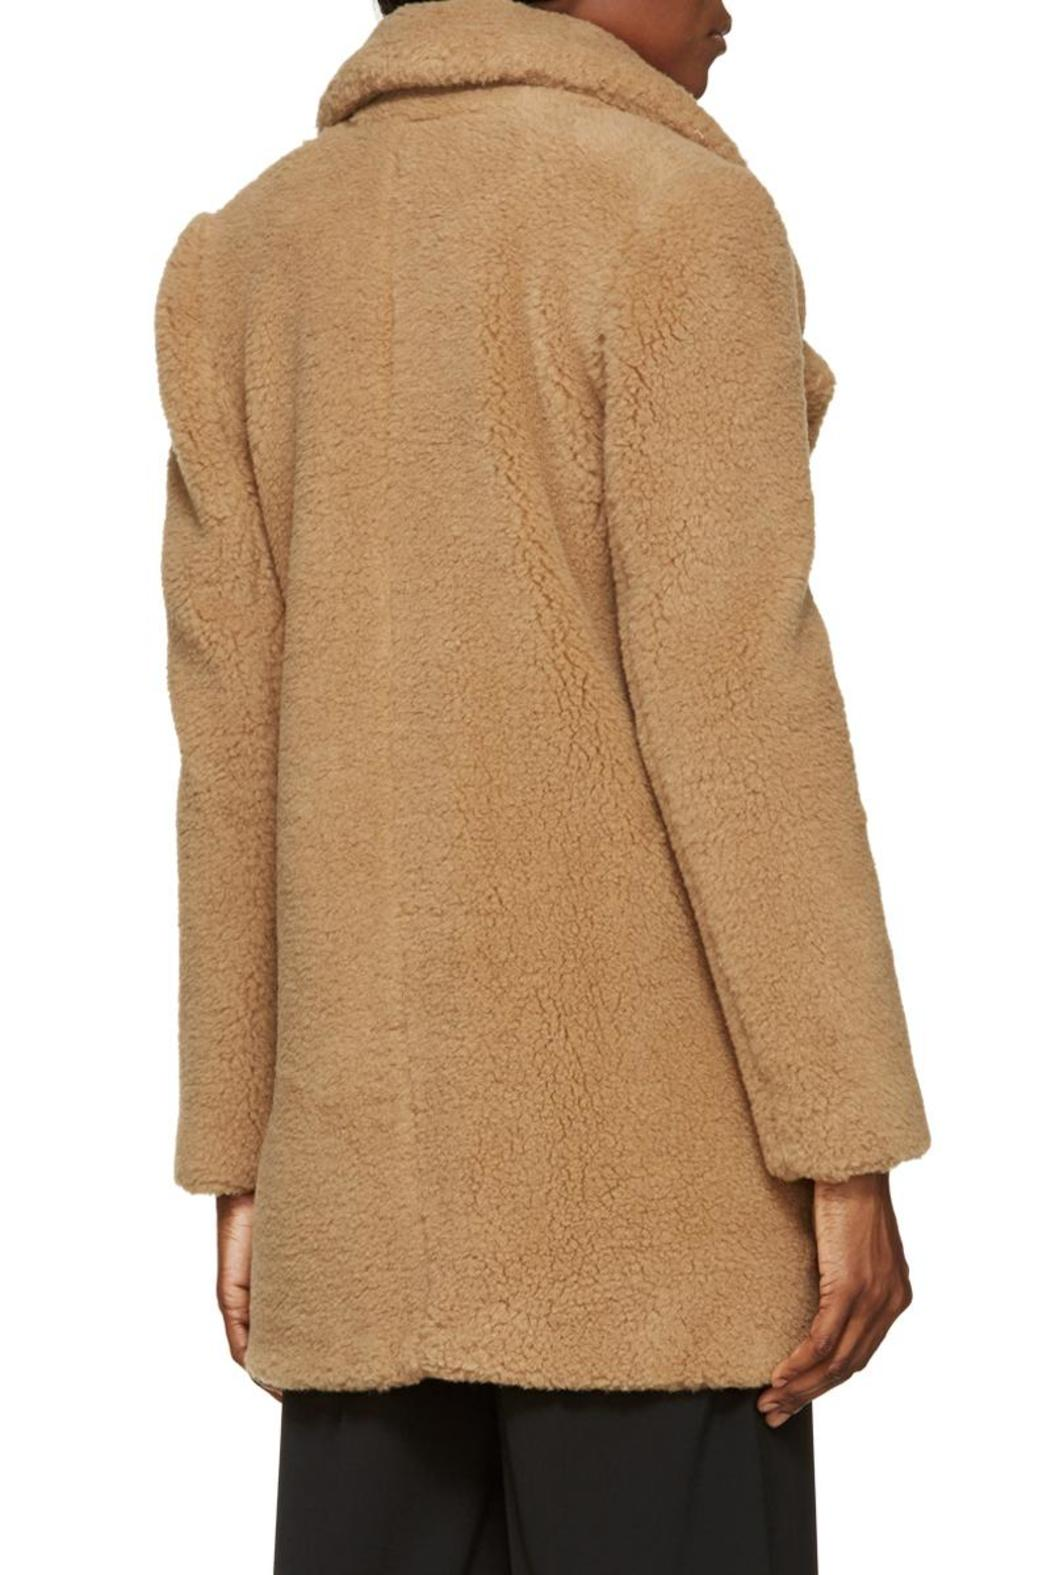 CARVEN Teddy Bear Peacoat from West Loop by Another 20 ...